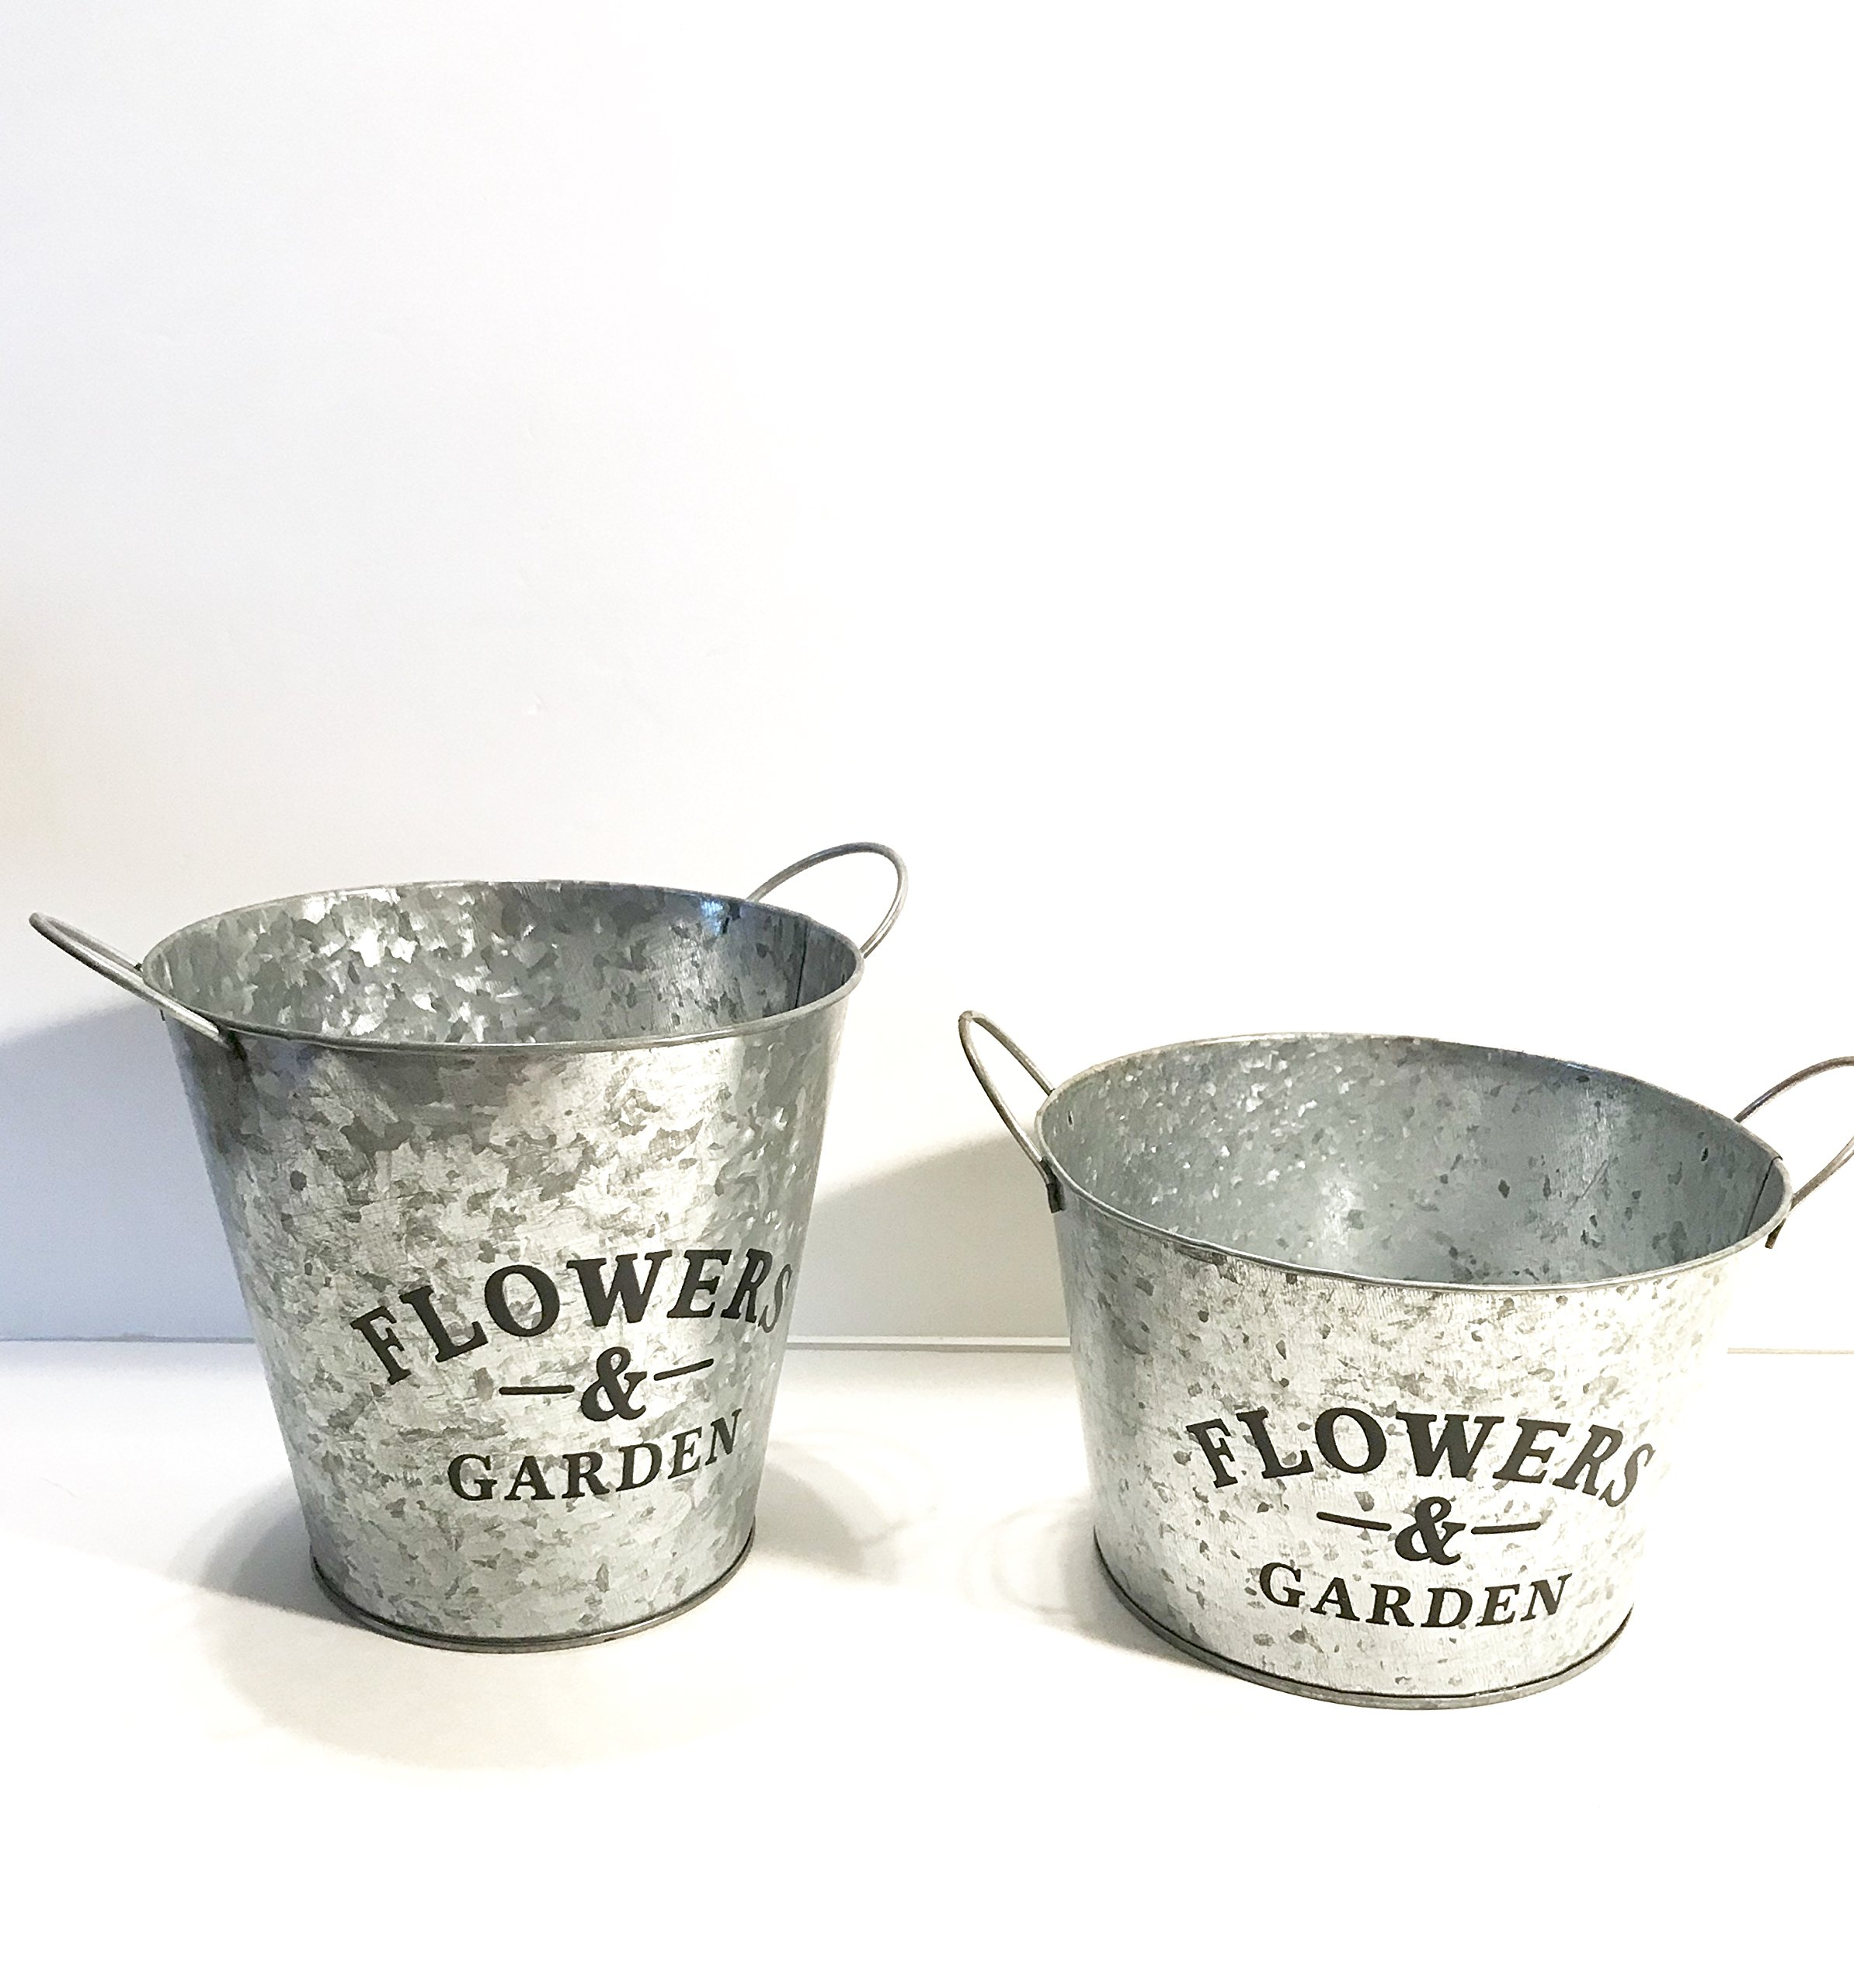 Farmhouse Multi-use Flowers and Garden Metal Bucket!